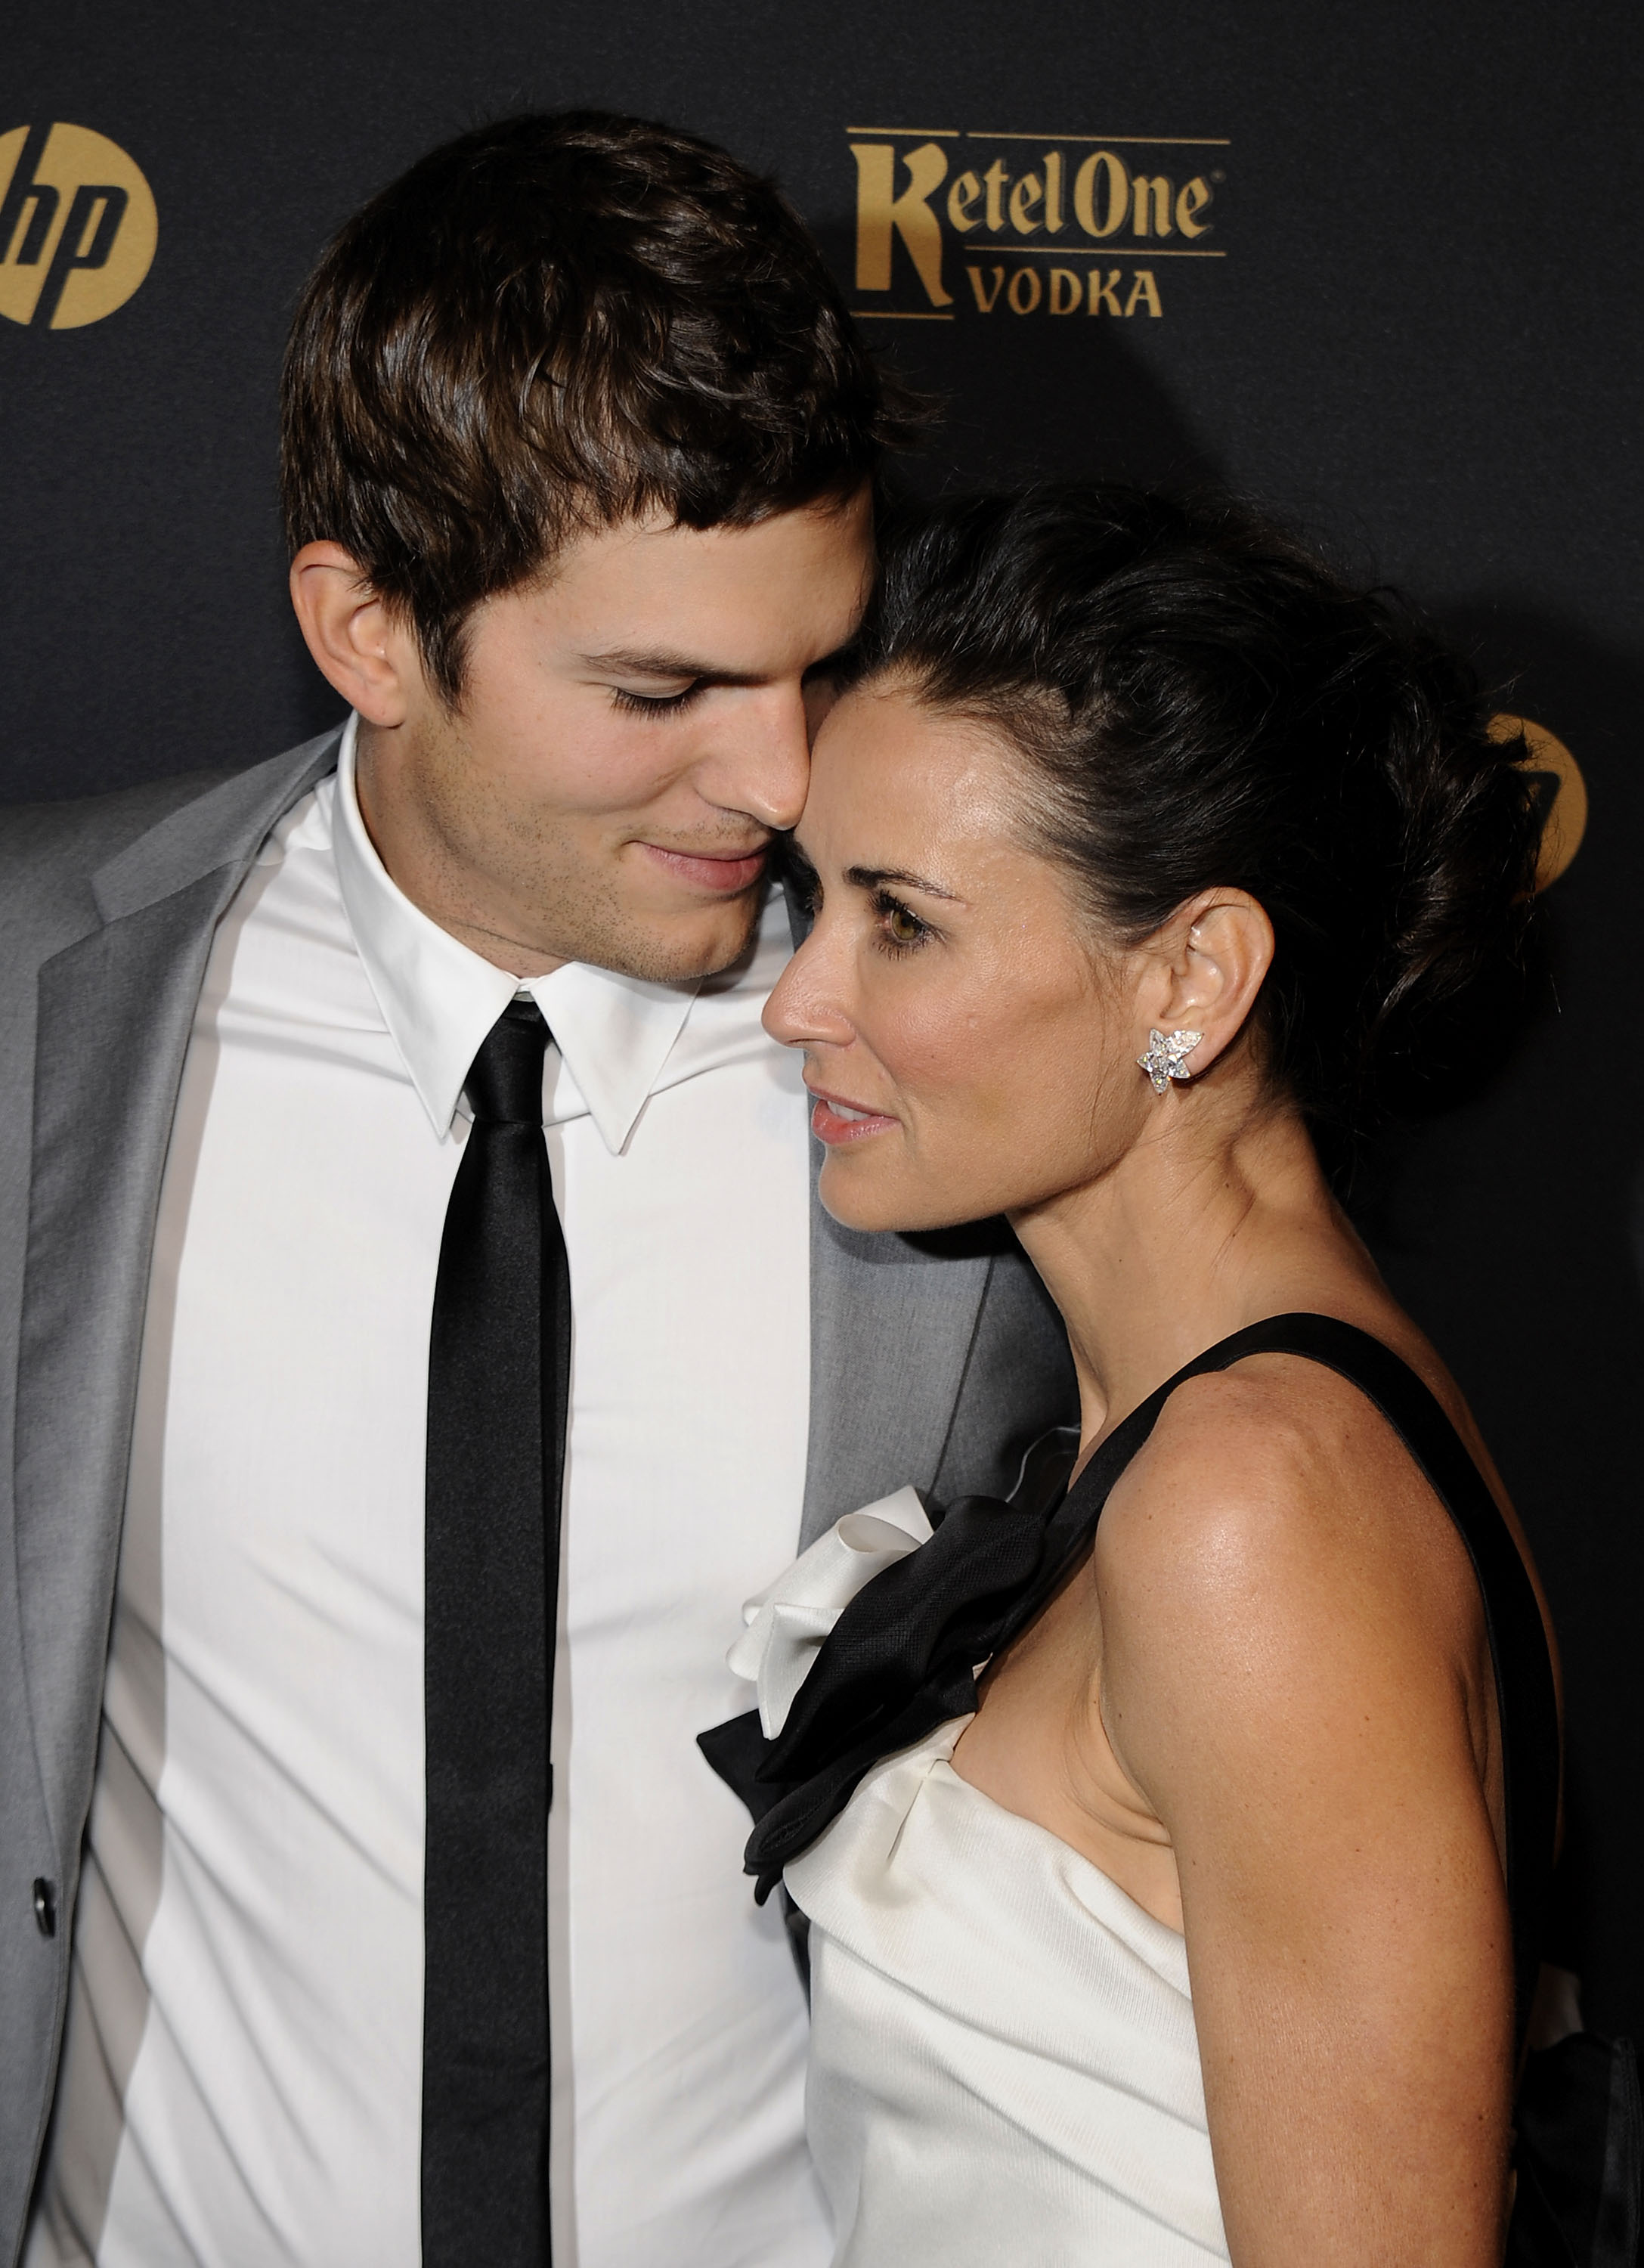 Ashton Kutcher and Demi Moore attend the GQ Gentlemen's Ball 2009 | Source: Getty Images